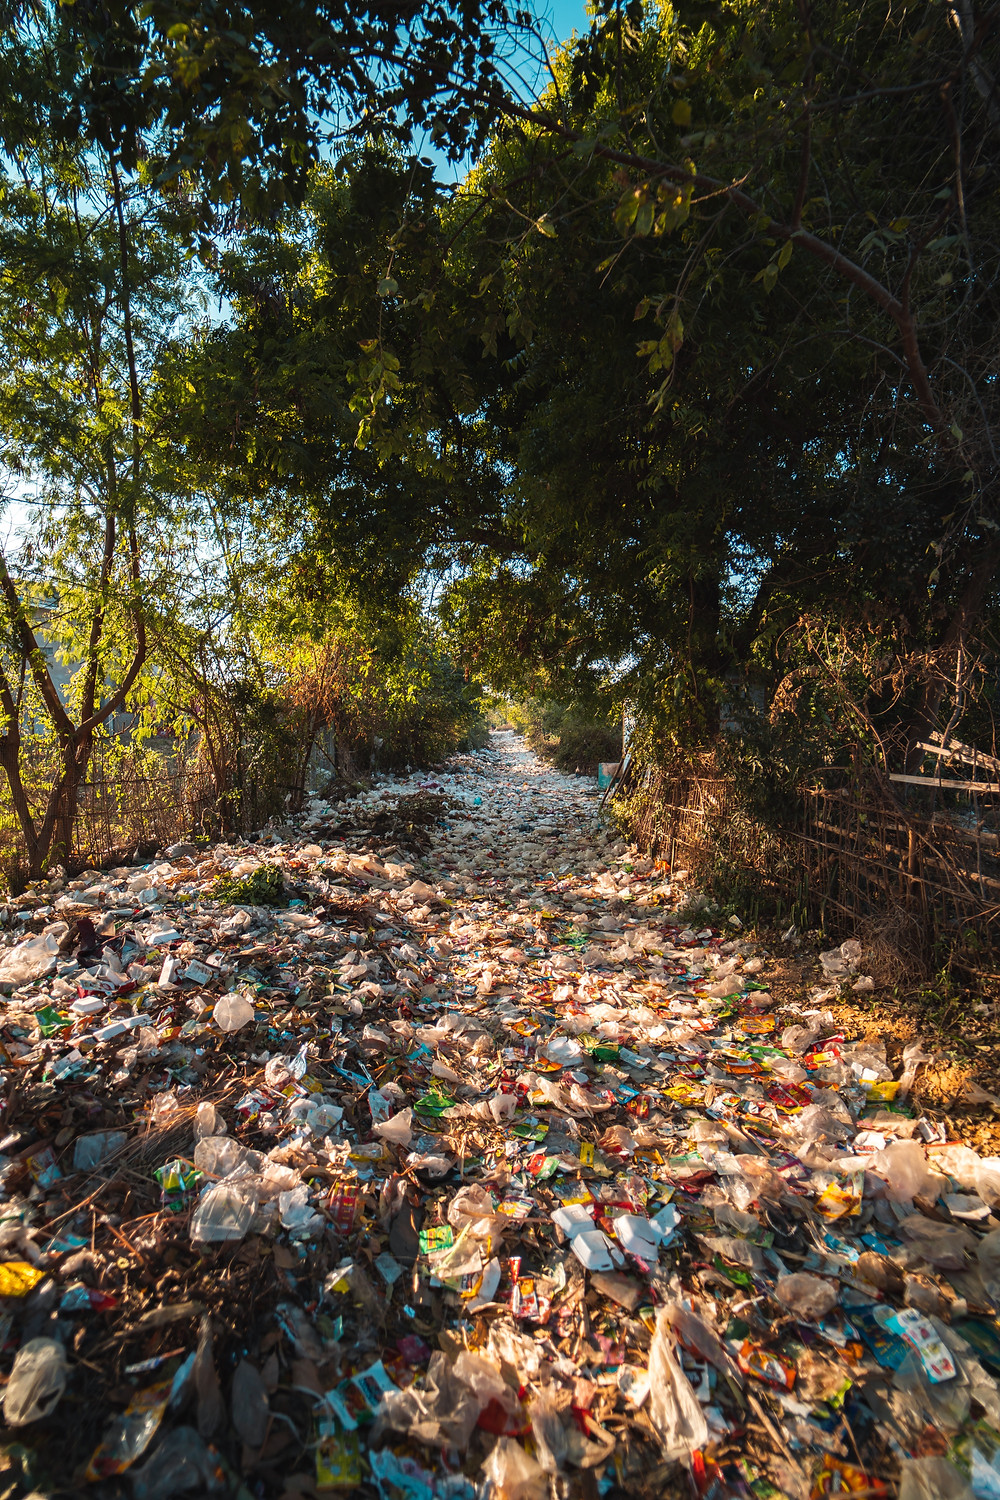 An image of trash covering an entire river